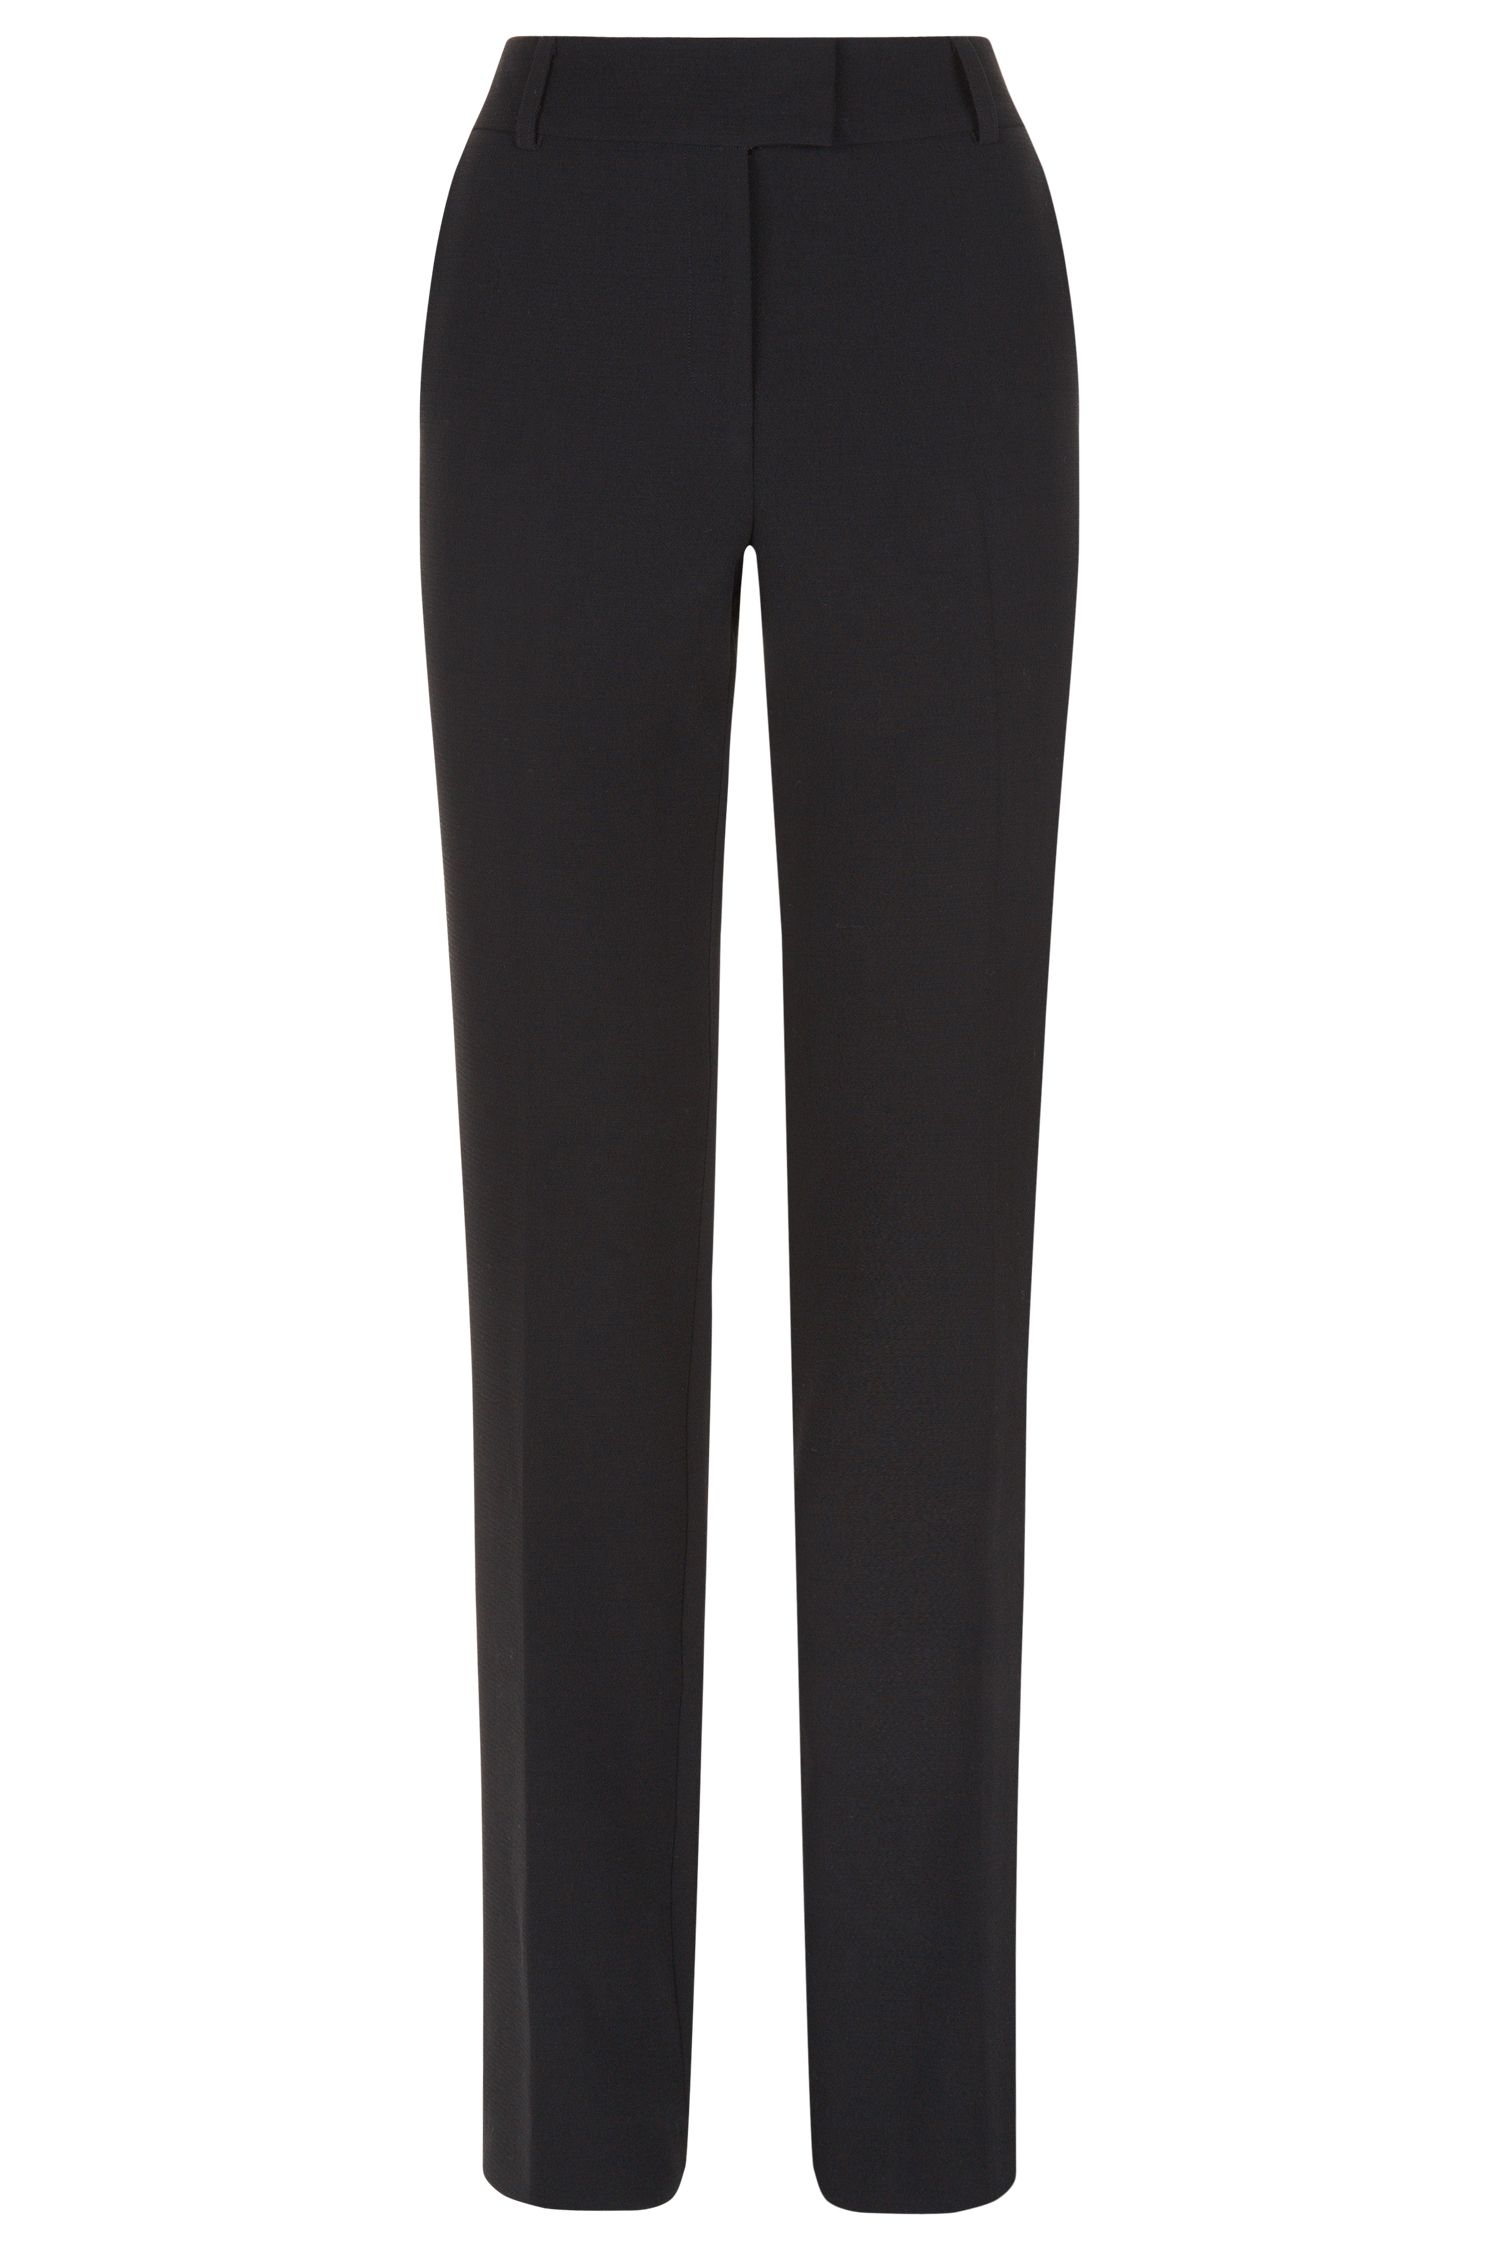 Fenn Wright Manson Orbit Trouser, Granite